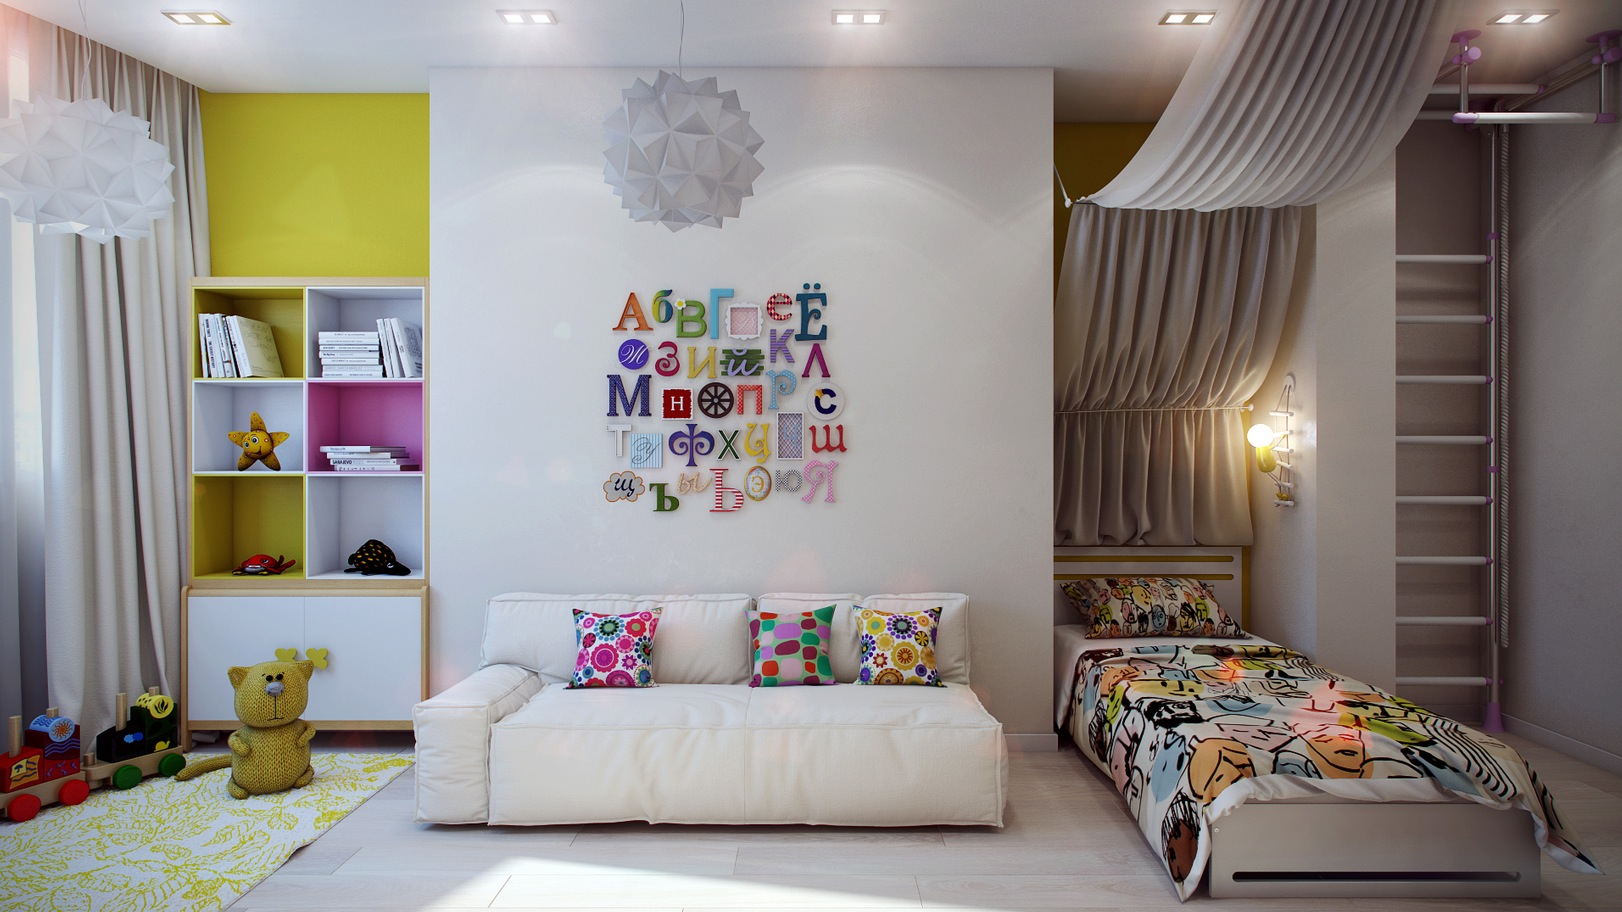 Casting color over kids rooms Cute kid room ideas